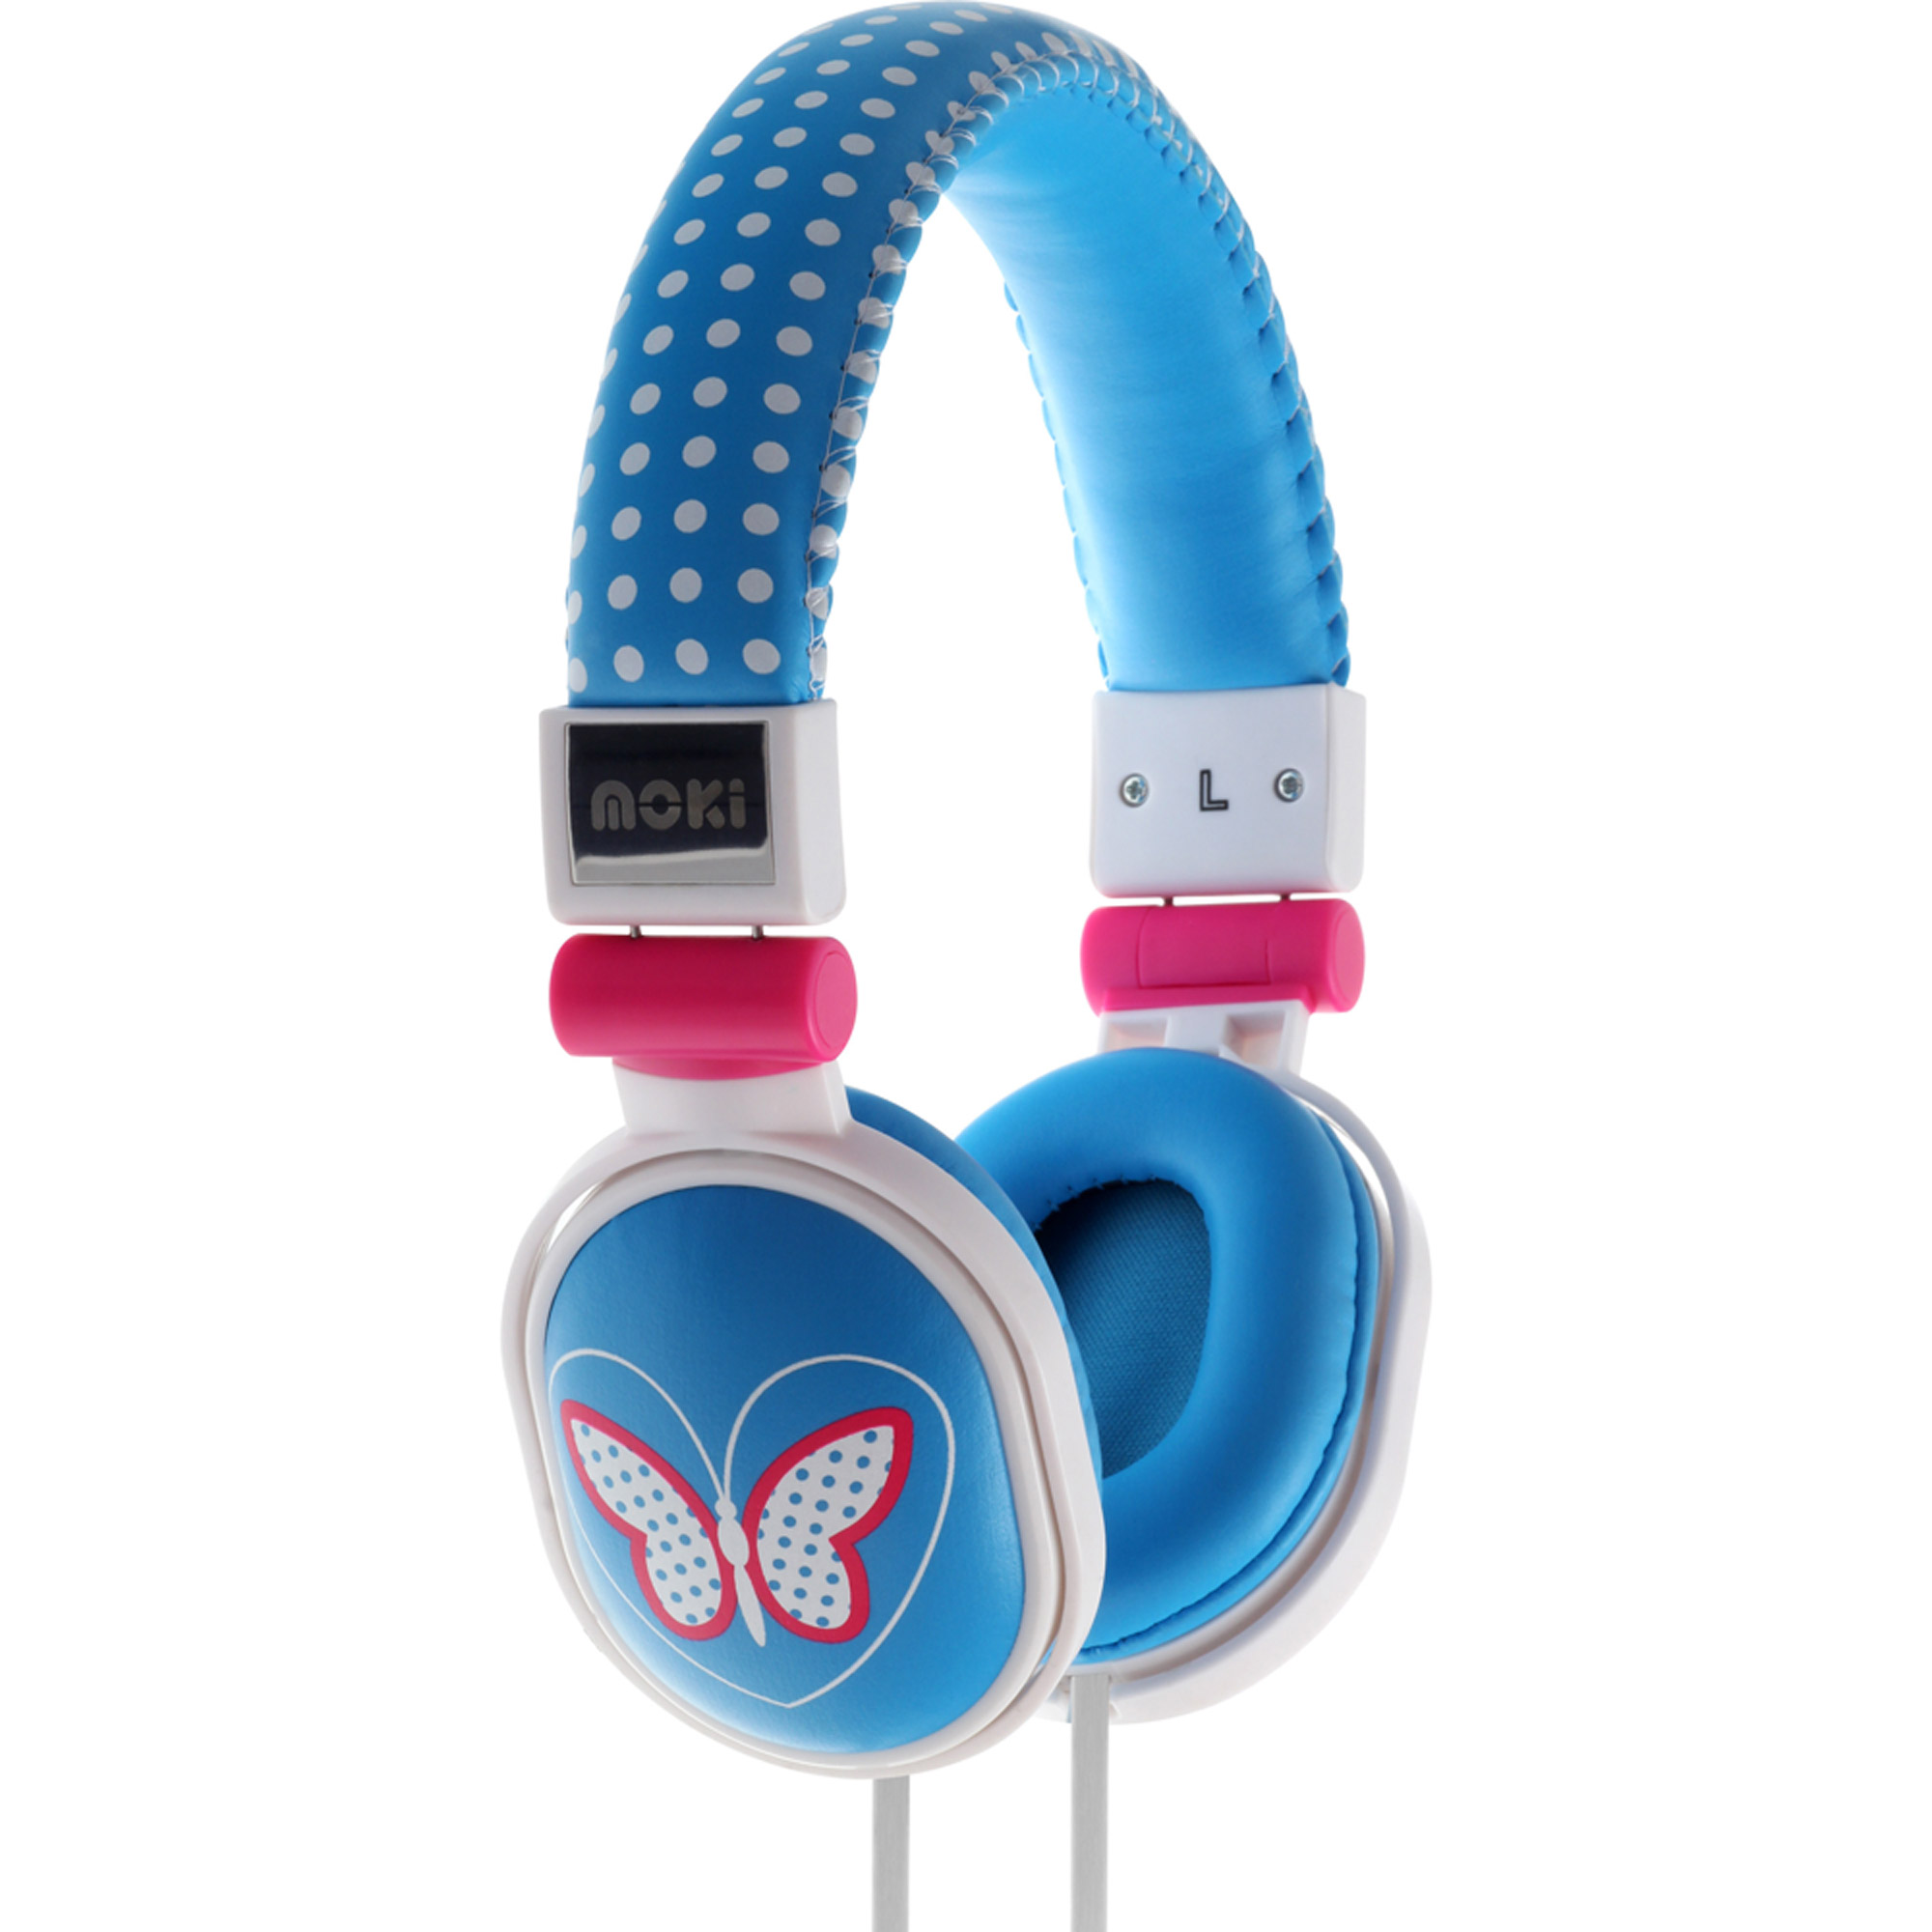 Moki Popper Butterfly Blue, Soft Cushion DJ Style, Swivel Ear Cup Headphones